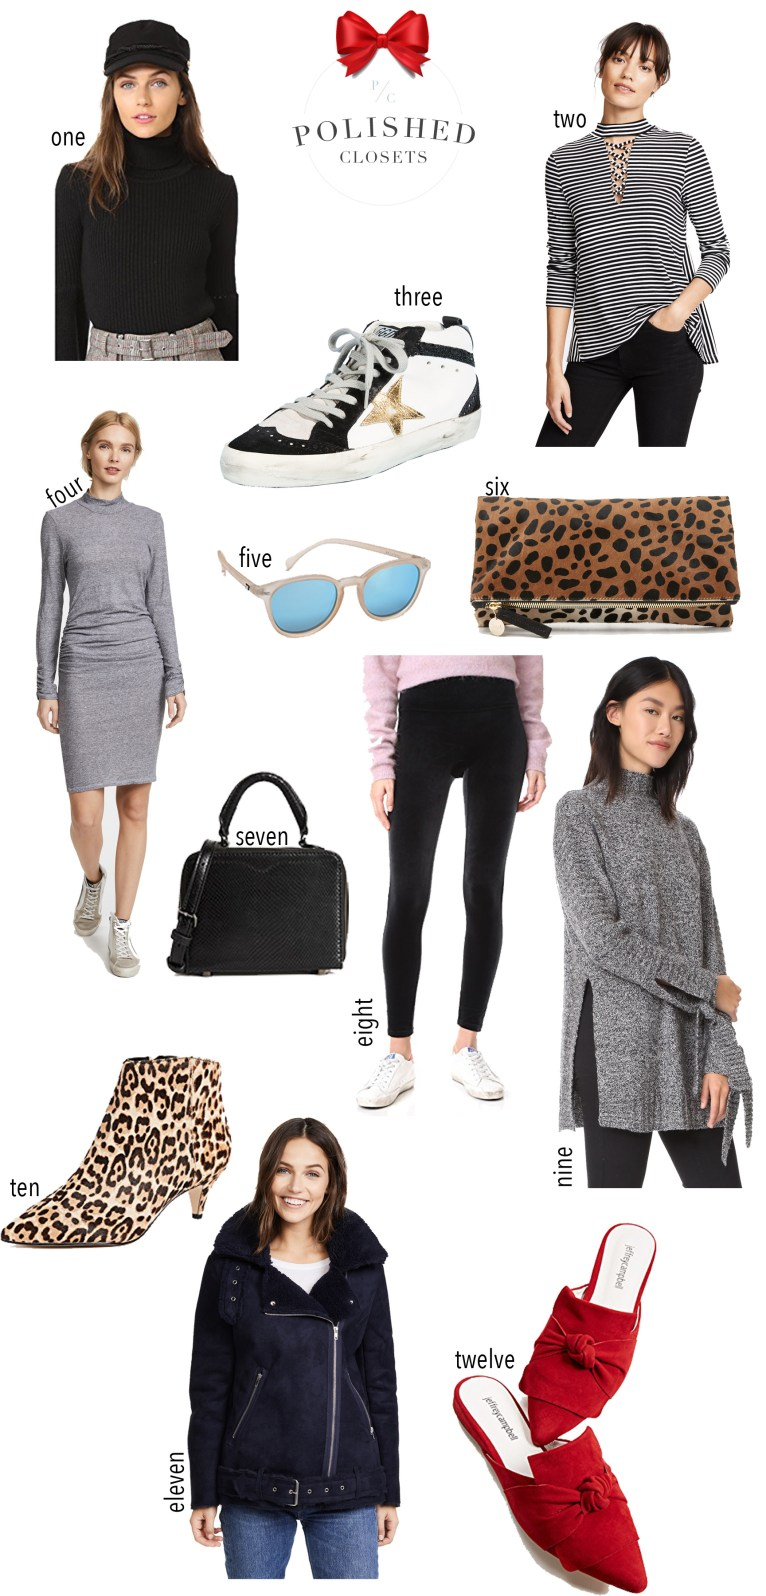 The best Black Friday sales picks from Shopbop by fashion blogger Maggie Kern of Polished Closets.